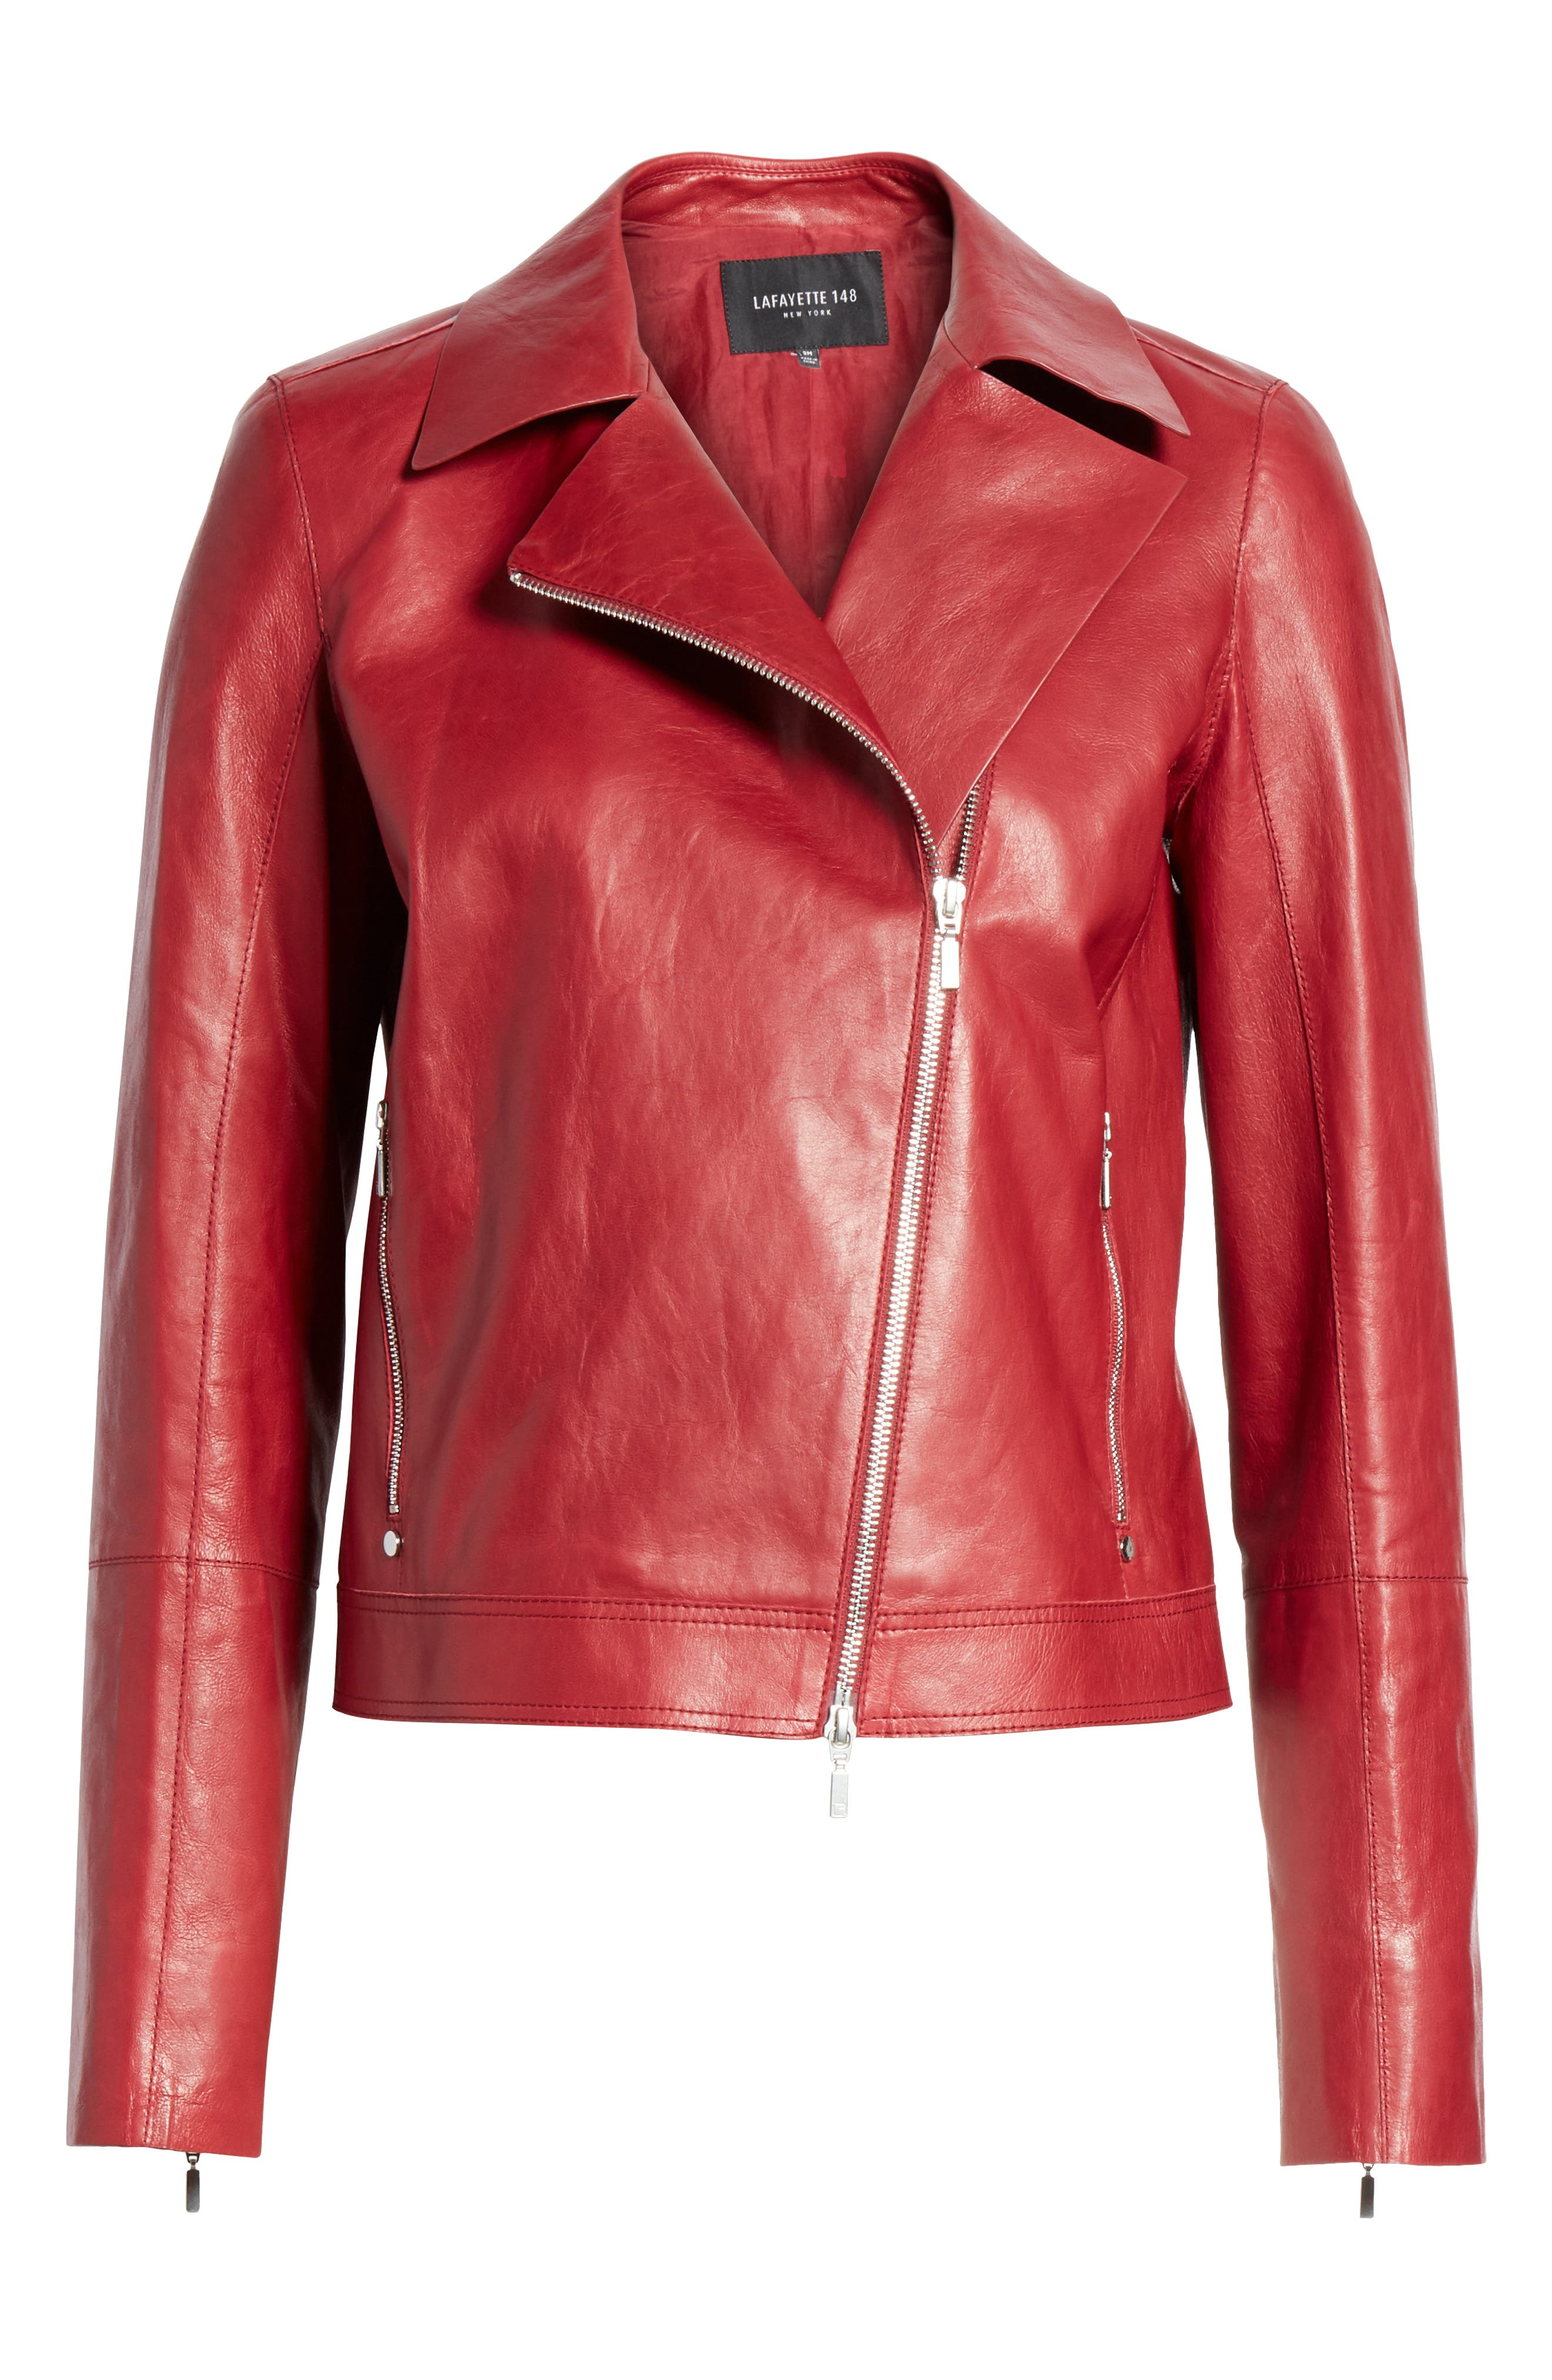 LAFAYETTE 148 NEW YORK, Marykate Leather Moto Jacket, Alternate thumbnail 5, color, 600